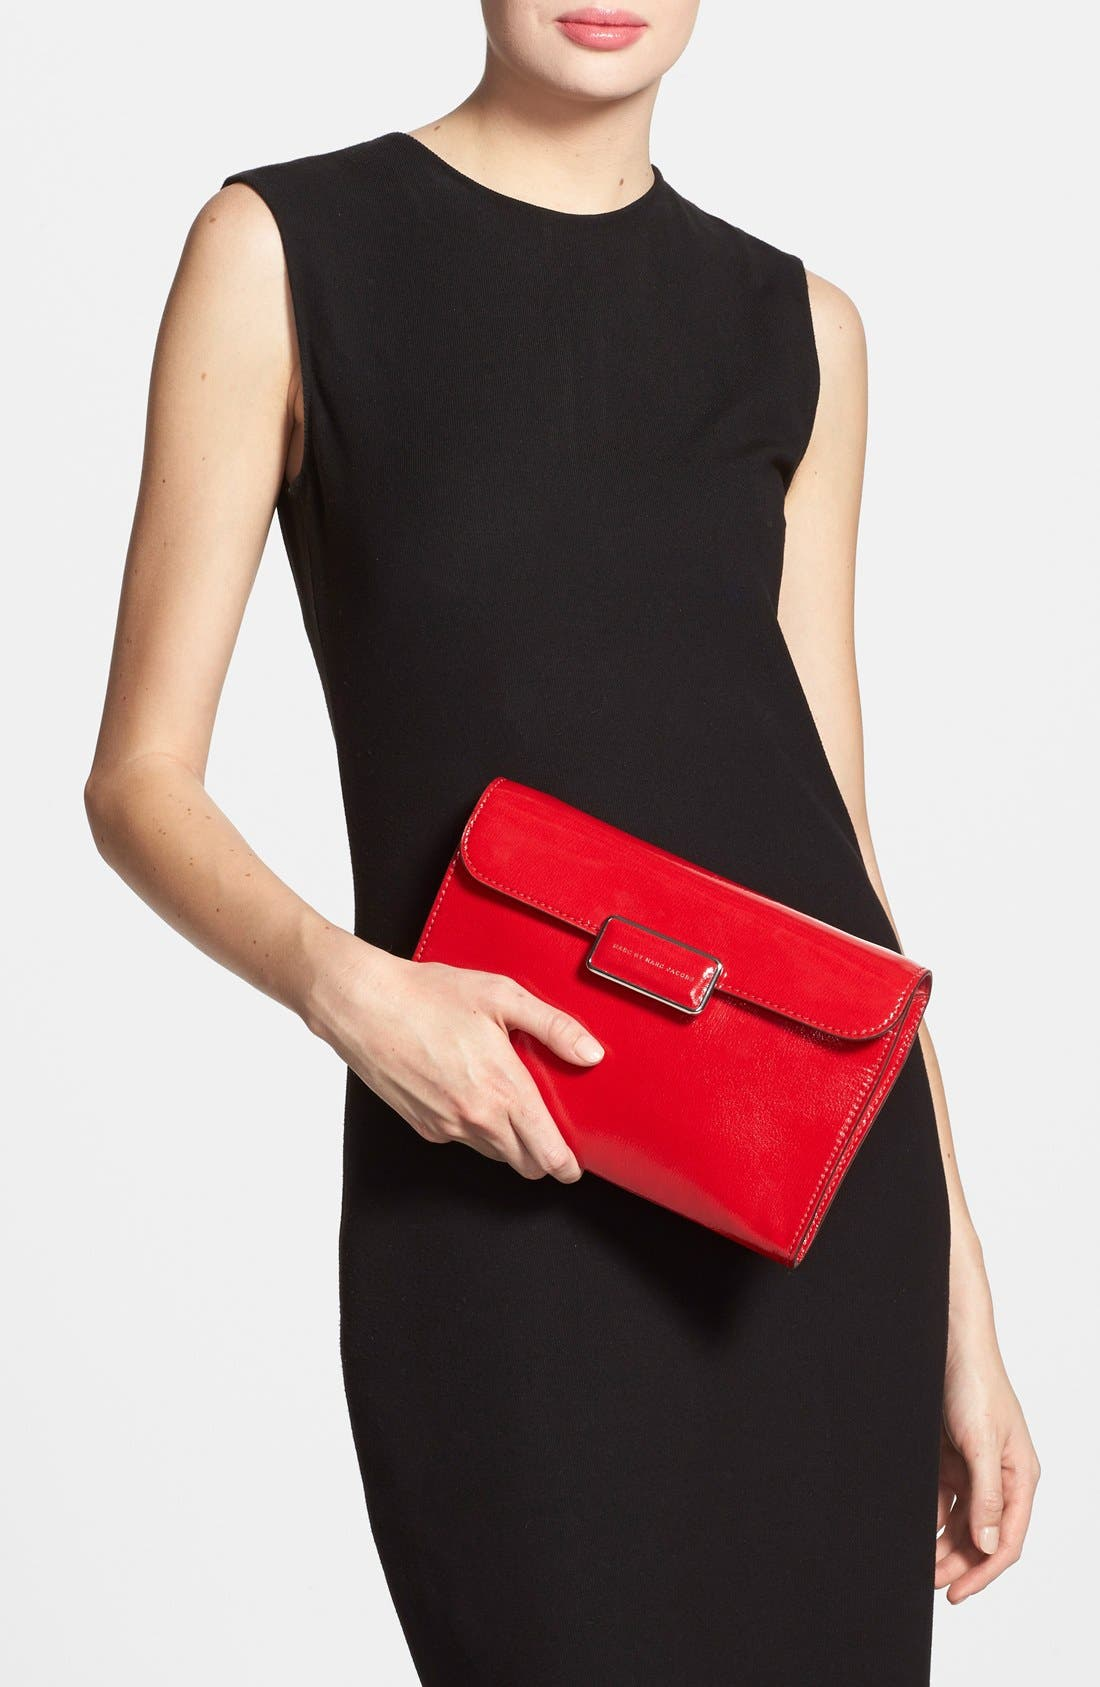 MARC BY MARC JACOBS 'Pegg' Patent Leather Clutch,                             Alternate thumbnail 4, color,                             600